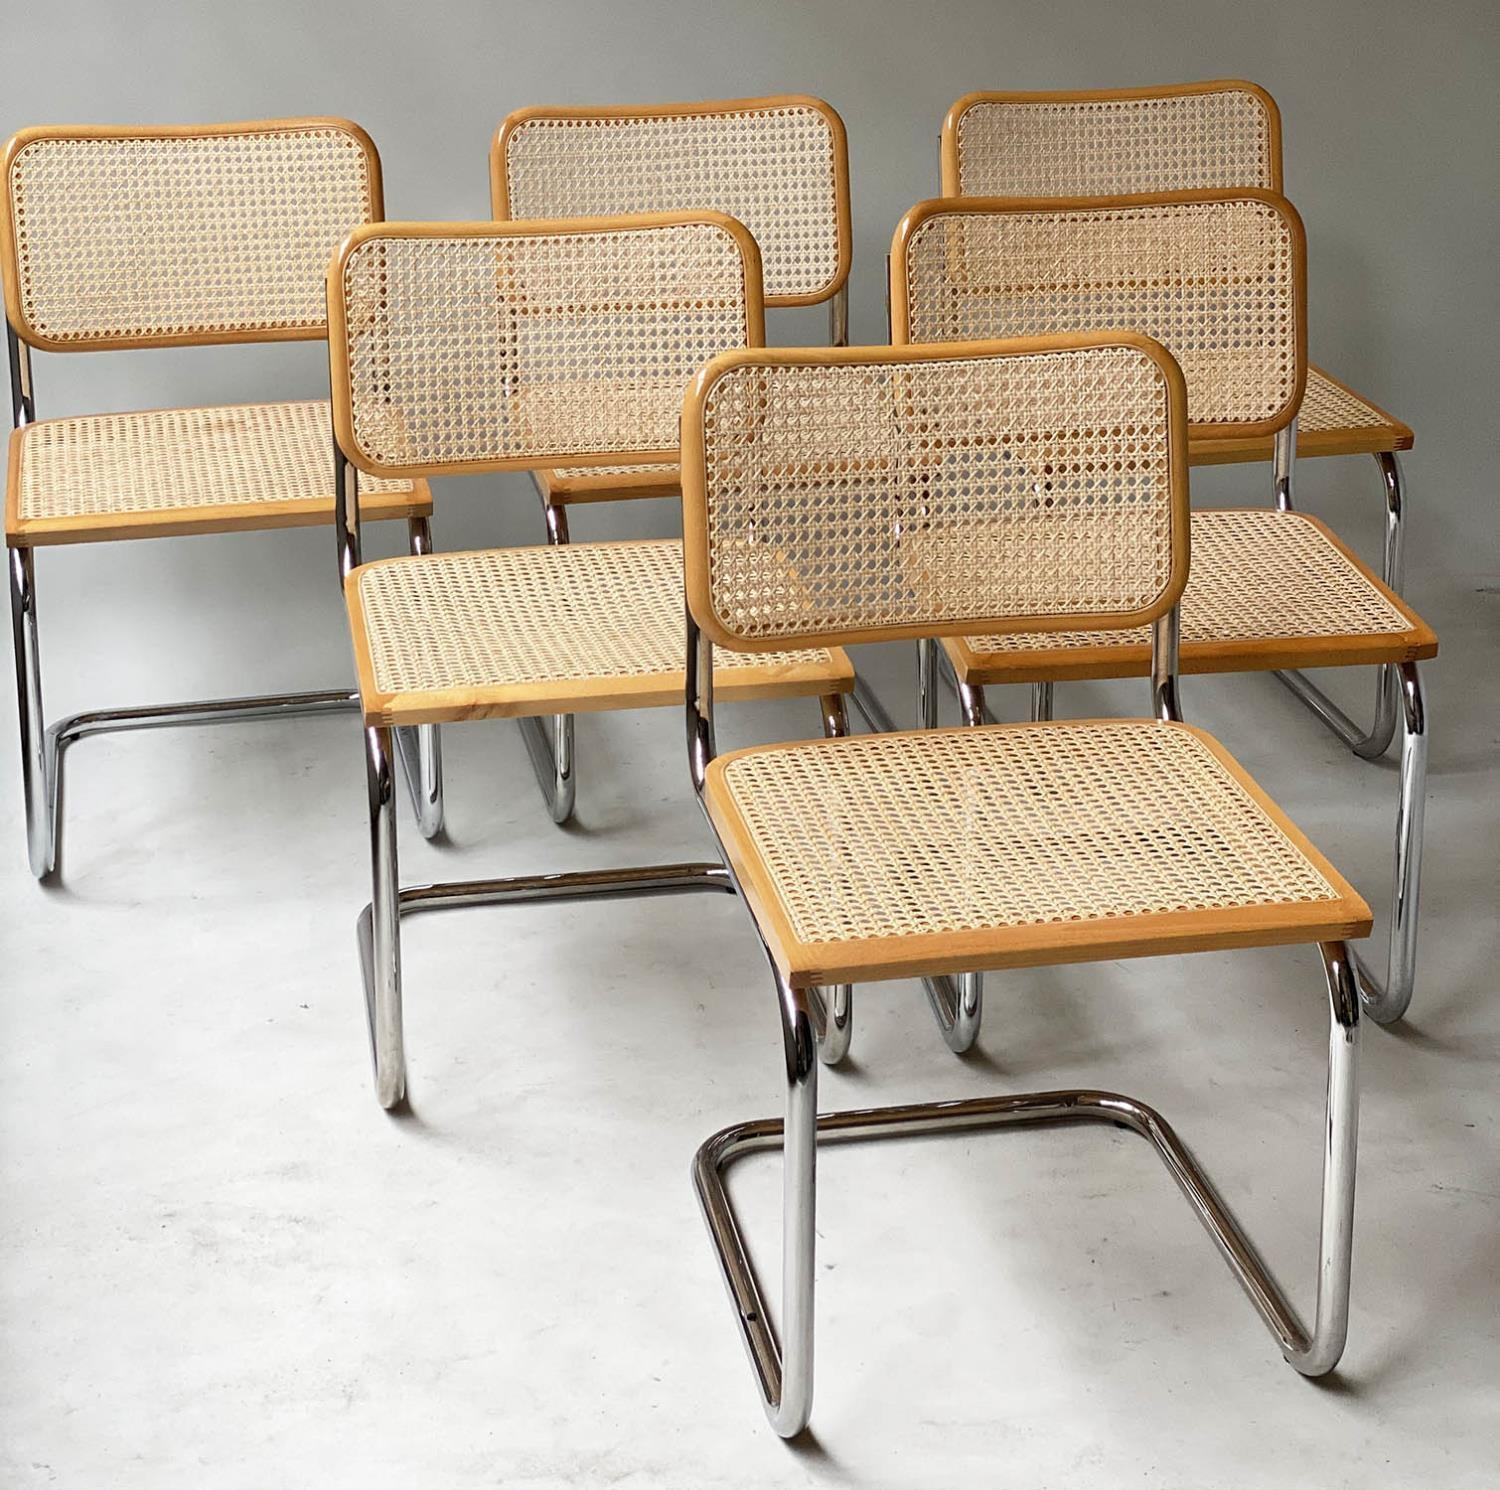 AFTER MARCEL BREUER DINING CHAIRS, Cesca style chairs, a set of six beech wood cane paneled and - Image 11 of 11